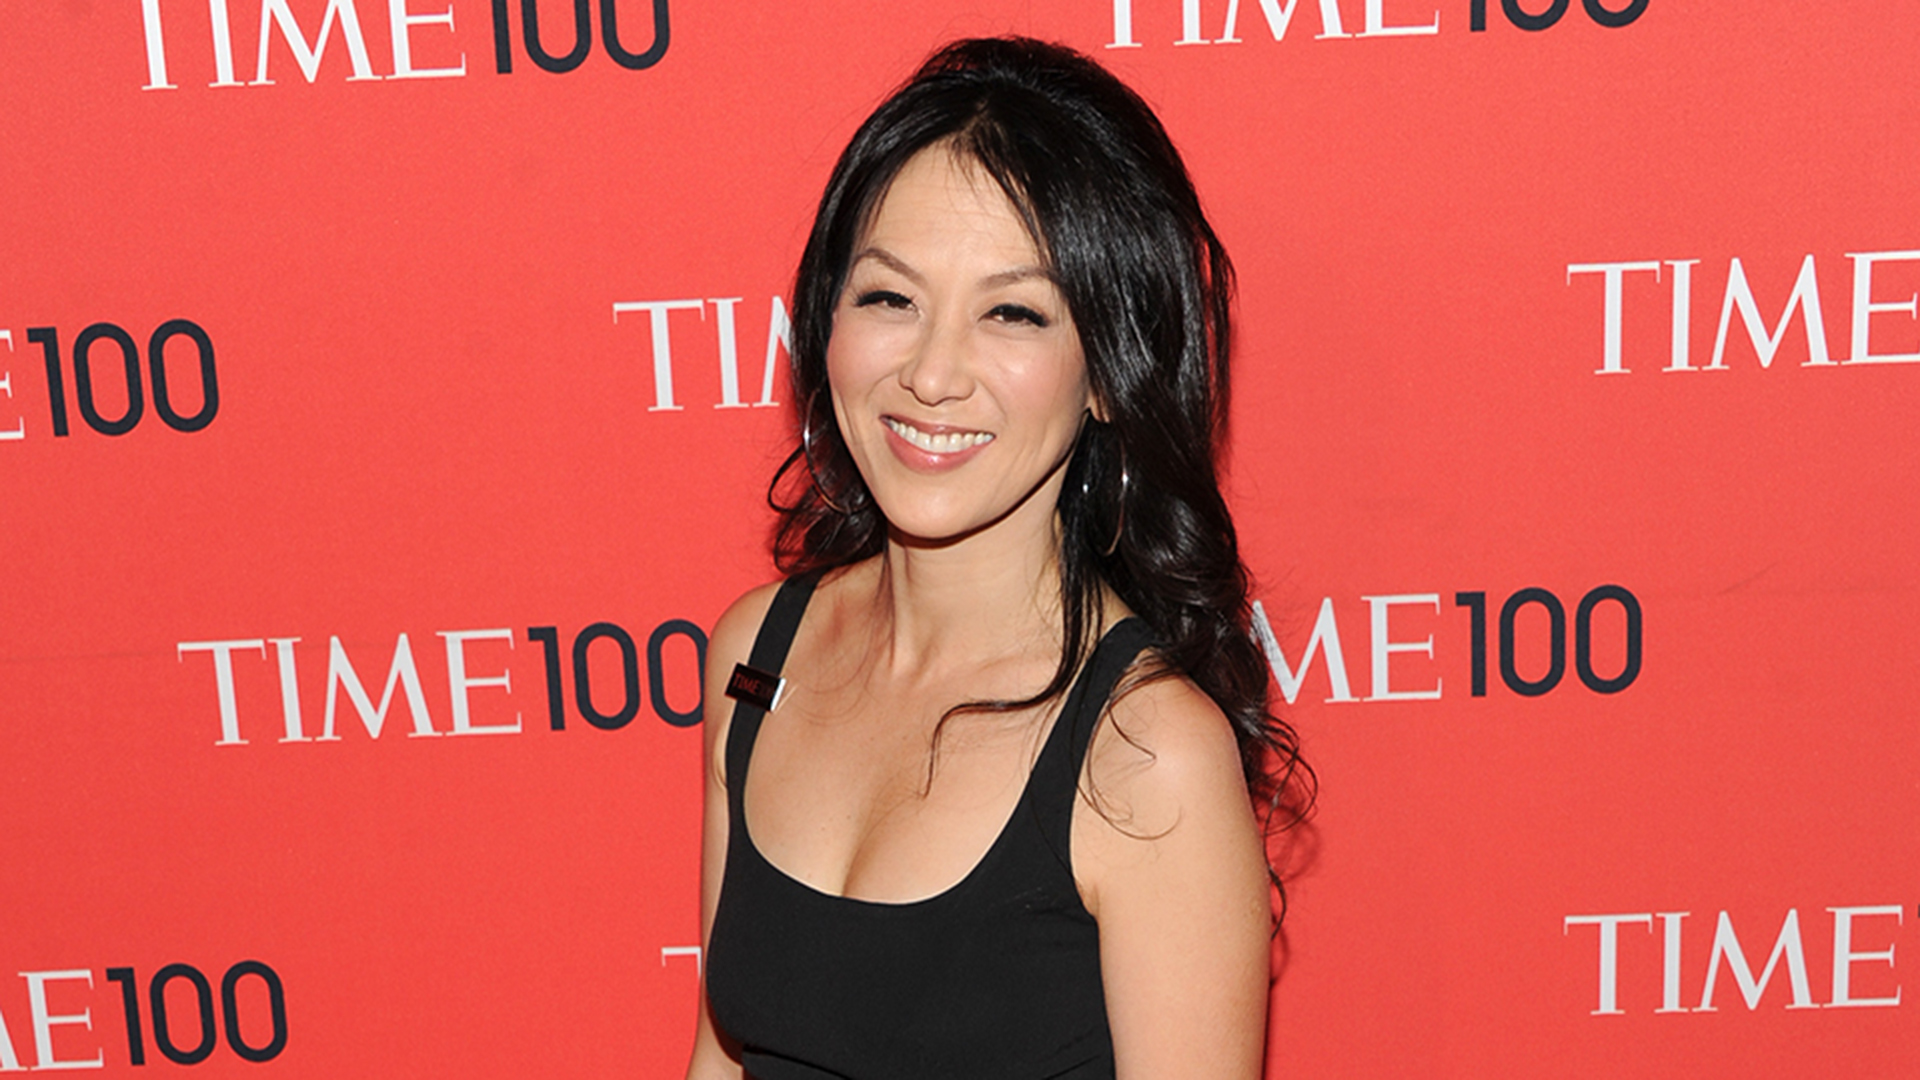 amy chua tiger mother essay Battle hymn of the tiger mother amy chua the penguin press $2595, 256 pages some reacted in horror when amy chua threatened stuffed animal arson because of her daughter's insubordination during music practice.